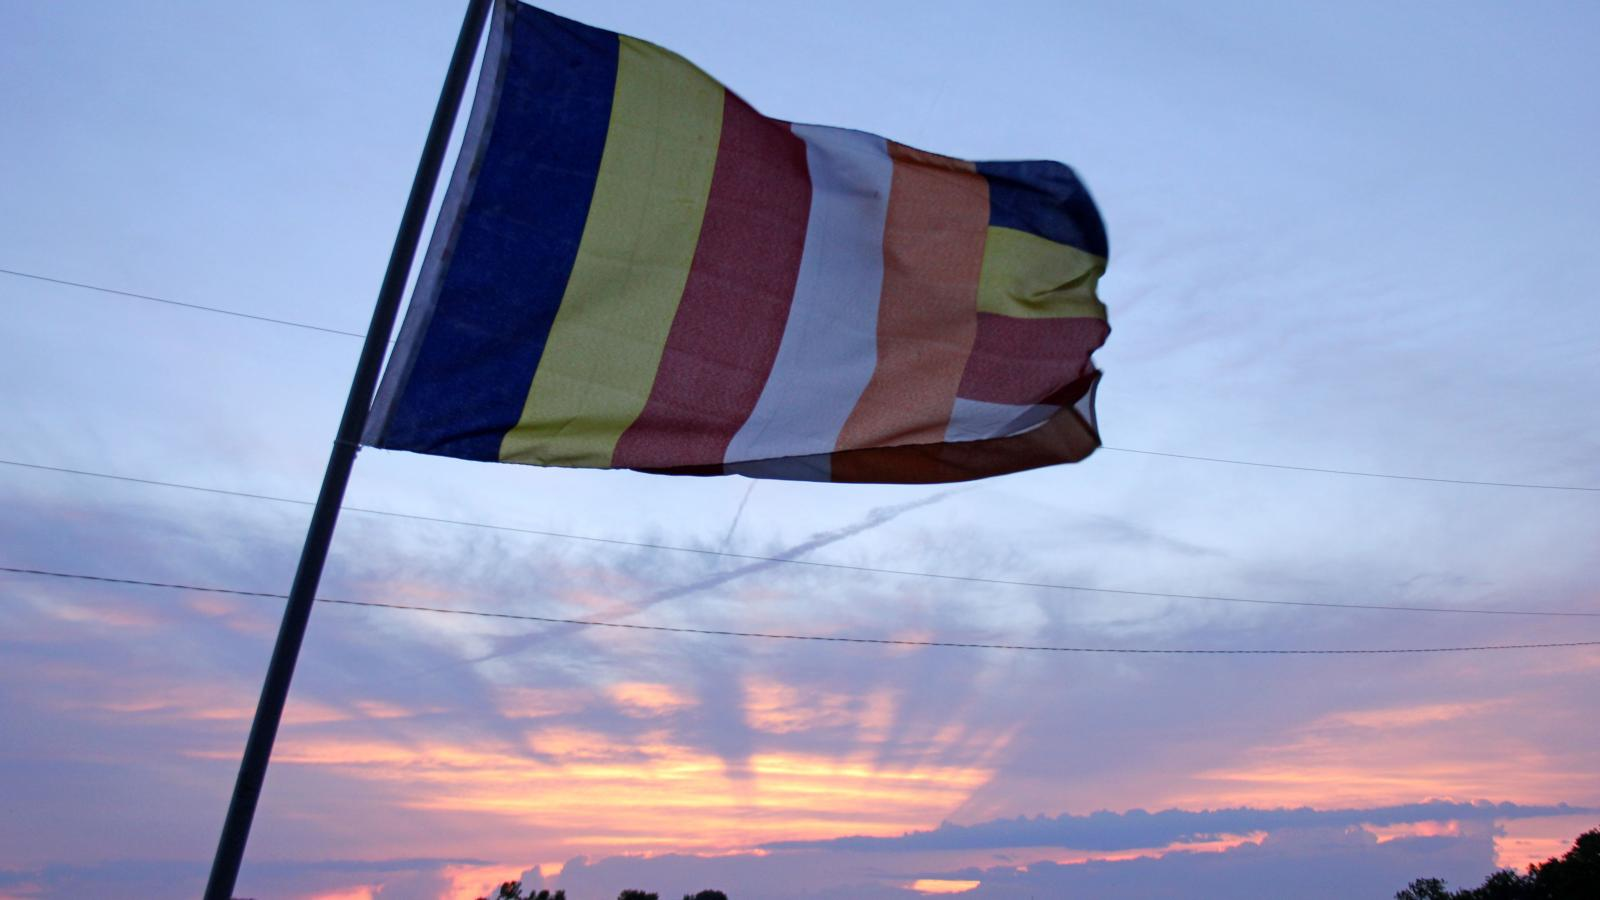 The Buddhist flag, created to symbolize and universally represent Buddhism, waves in the wind during sunset outside Wat Buddhasamakidham.